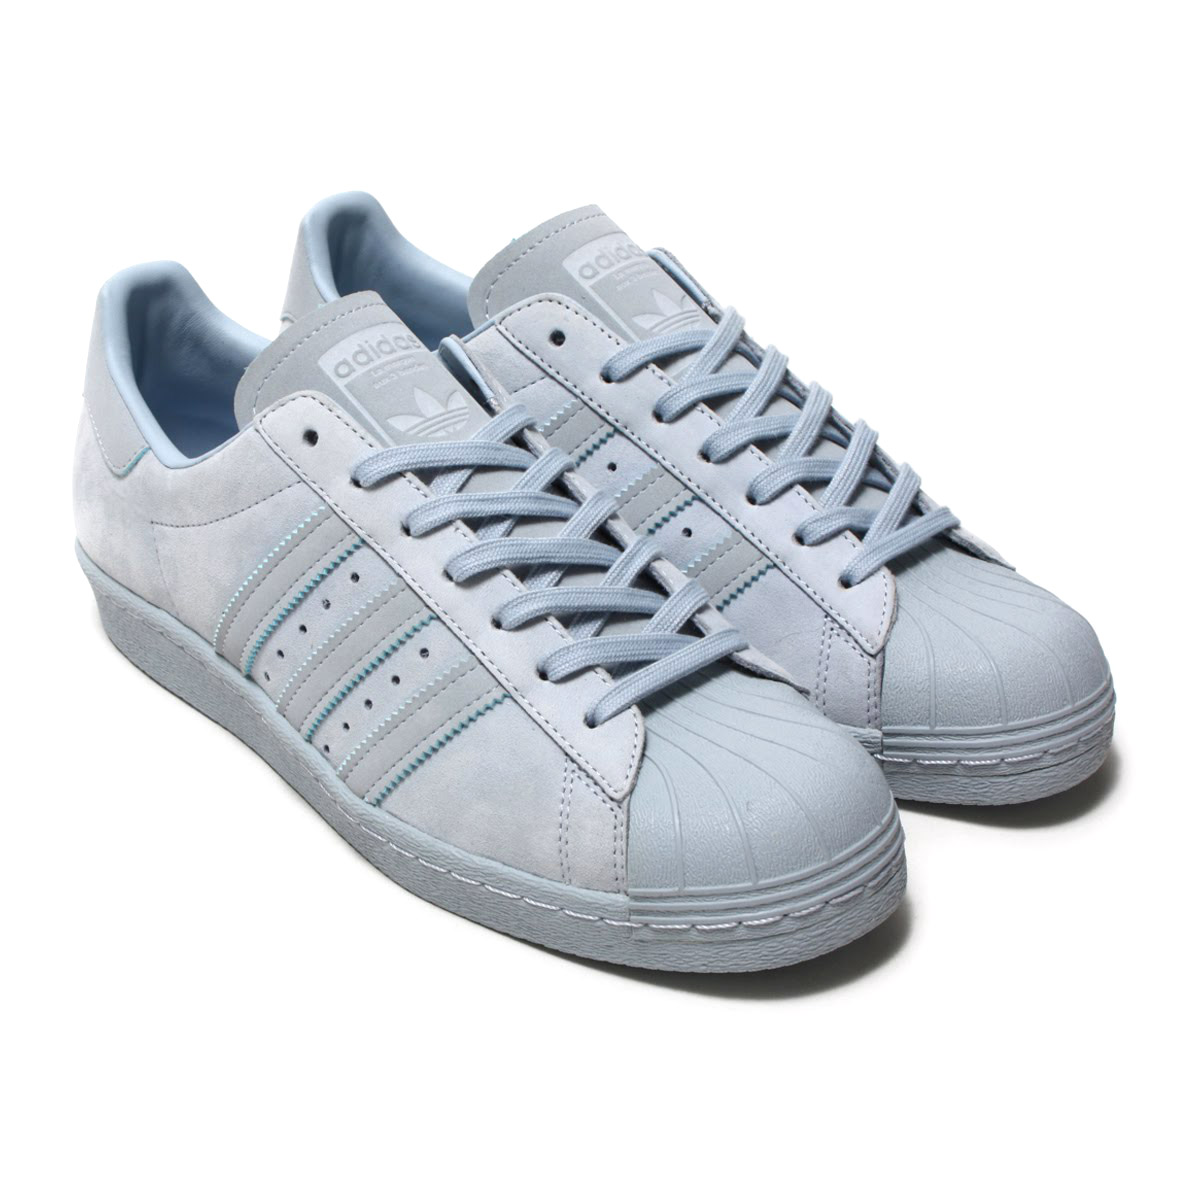 meet 307f2 6f0a5 adidas Originals SUPERSTAR 80s (Adidas originals superstar 80s) Aero  Blue/Aero Blue/Aero Blue 18SS-I